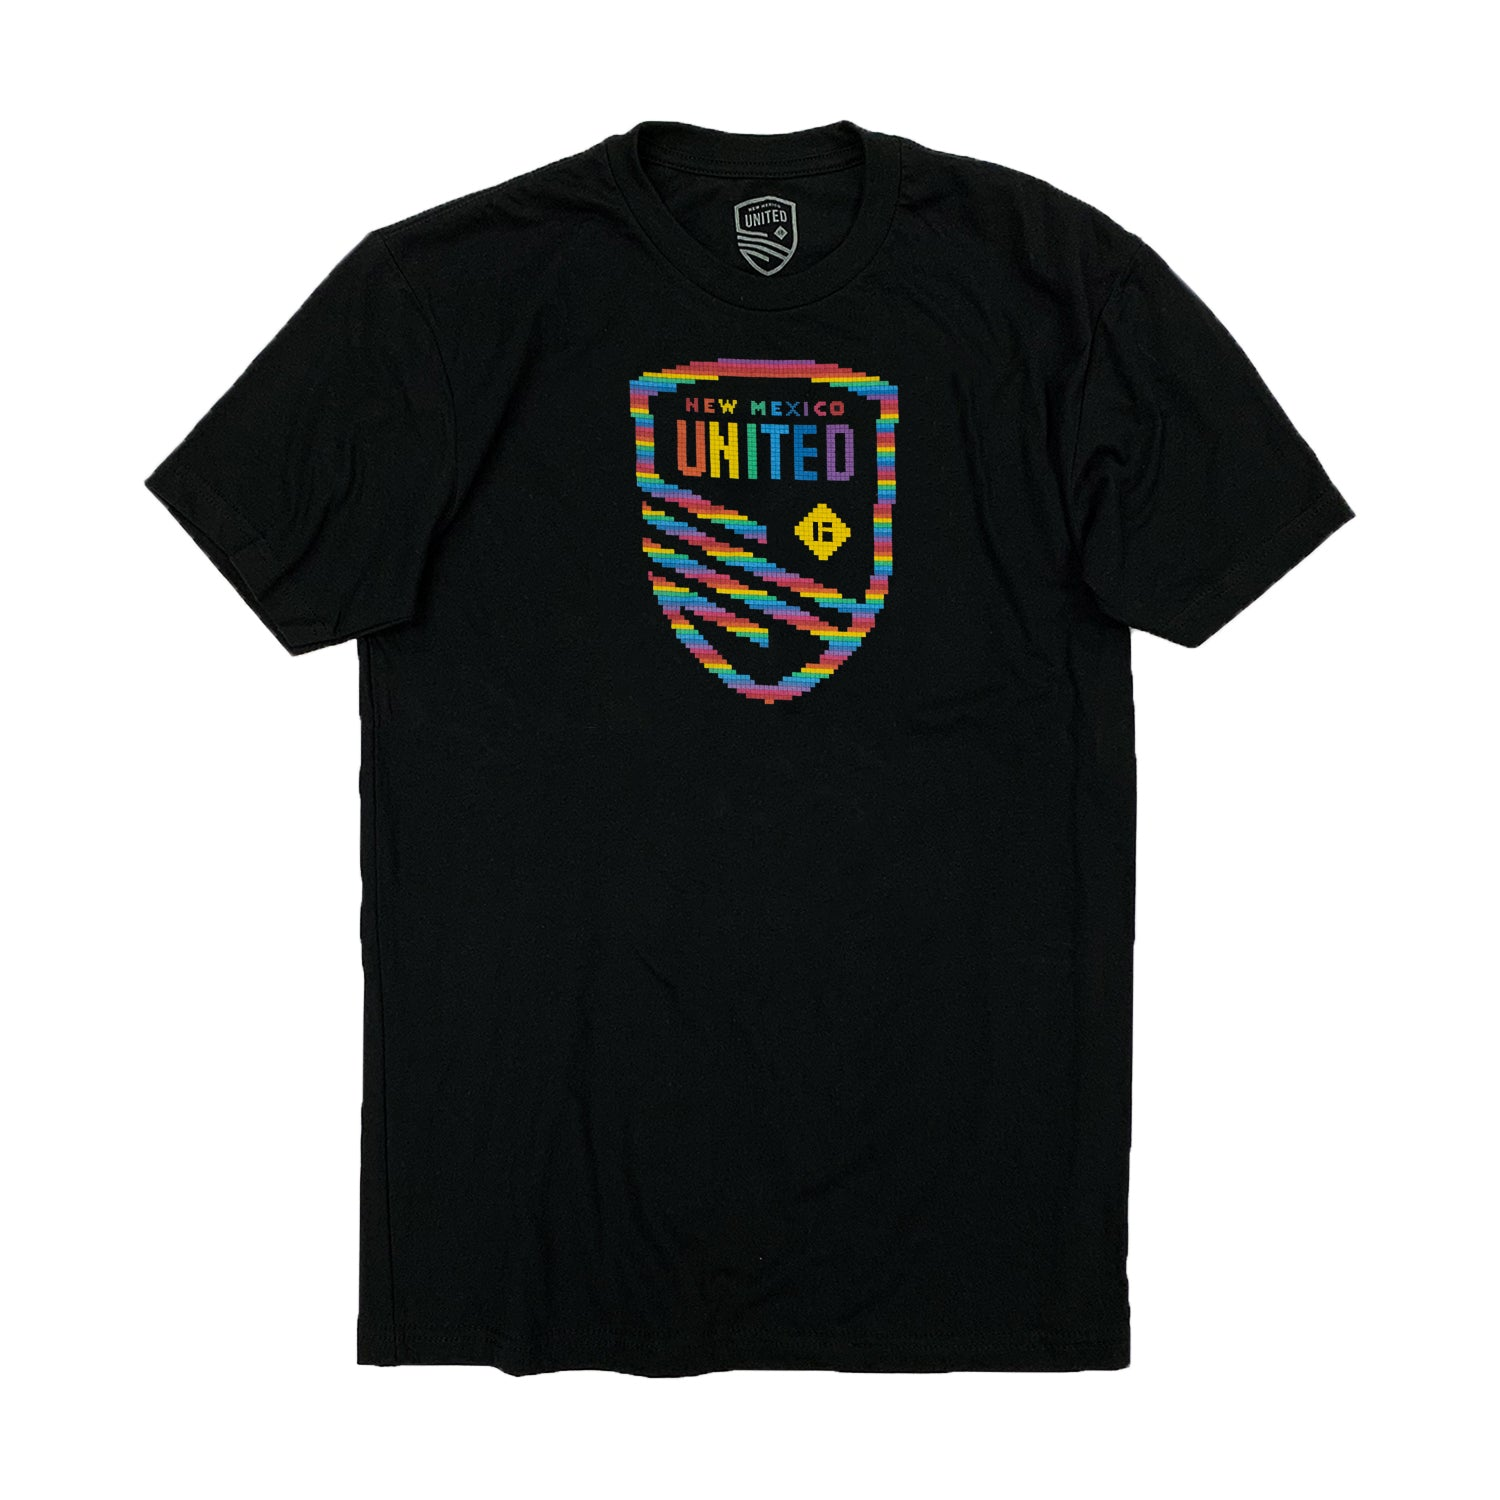 New Mexico United Mosaic Pride Tee - Black